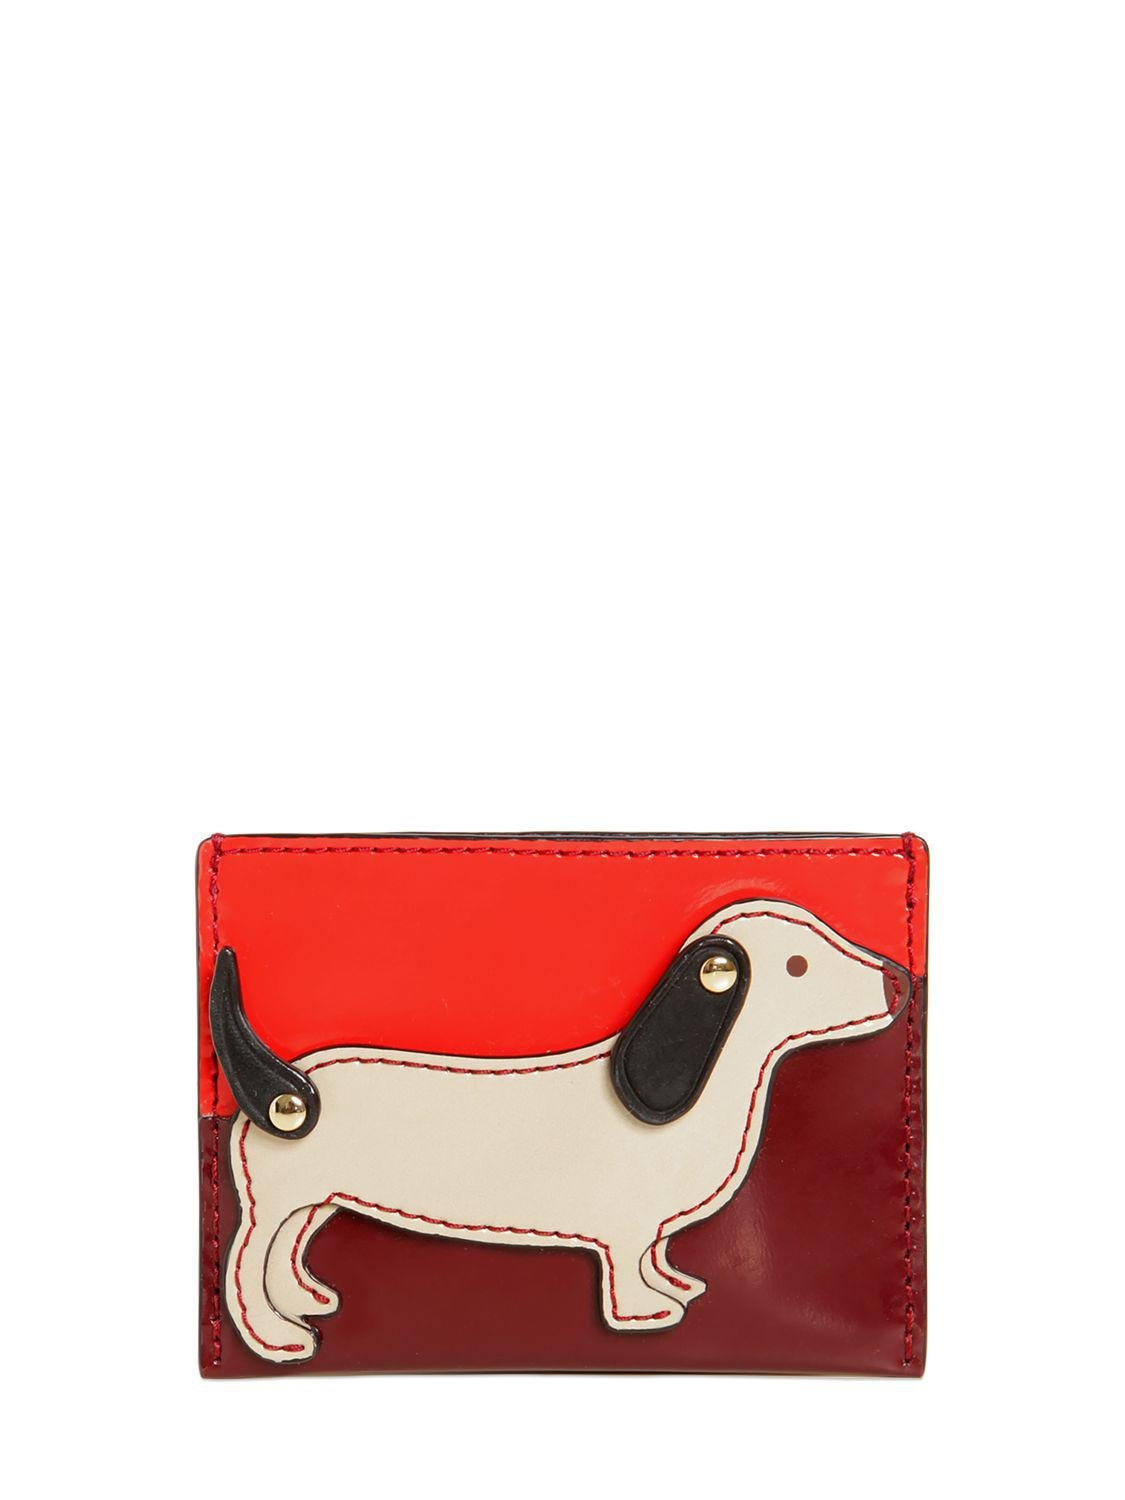 Lyst - Tory burch Dog Slim Leather Card Holder in Red